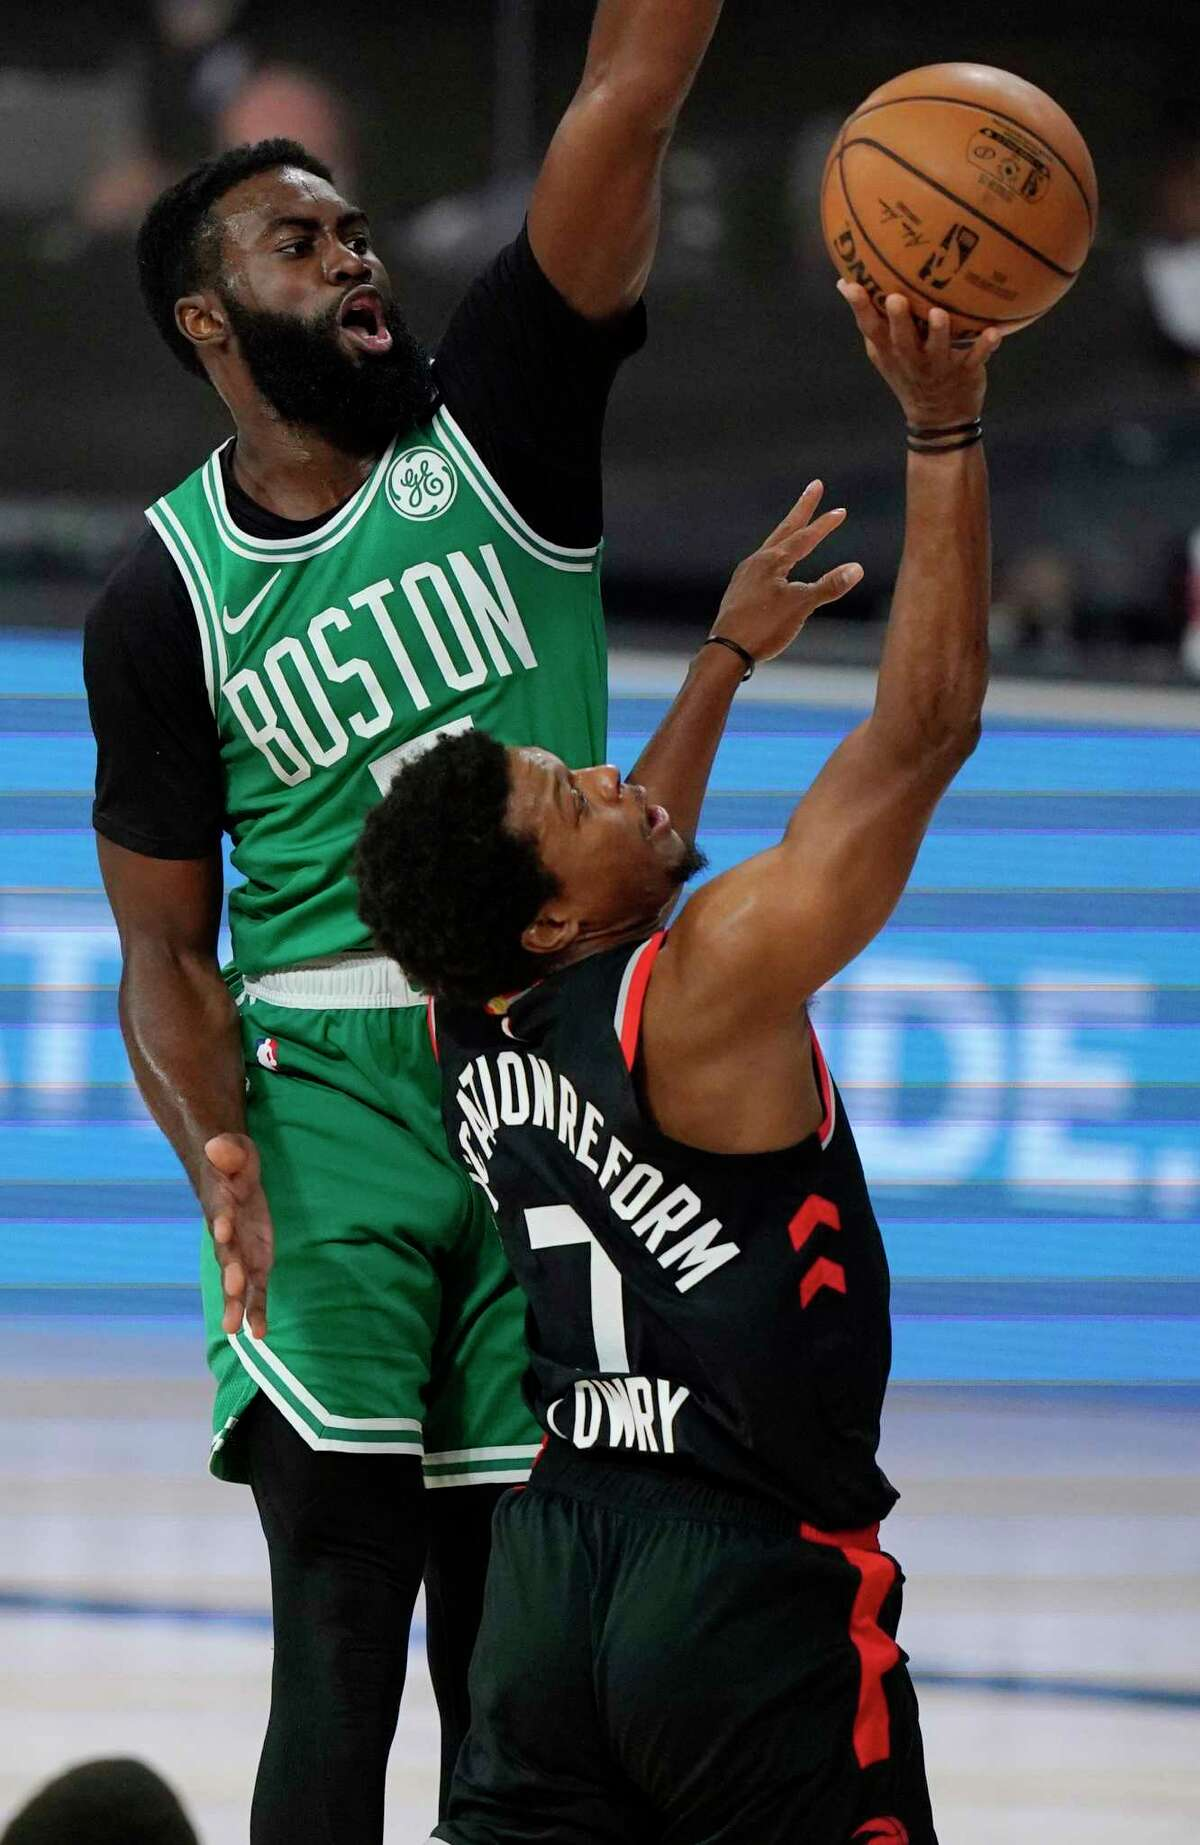 Toronto Raptors' Kyle Lowry (7) shoots in front of Boston Celtics' Jaylen Brown, left, in the first half of an NBA conference semifinal playoff basketball game Thursday, Sept 3, 2020, in Lake Buena Vista Fla. (AP Photo/Mark J. Terrill)